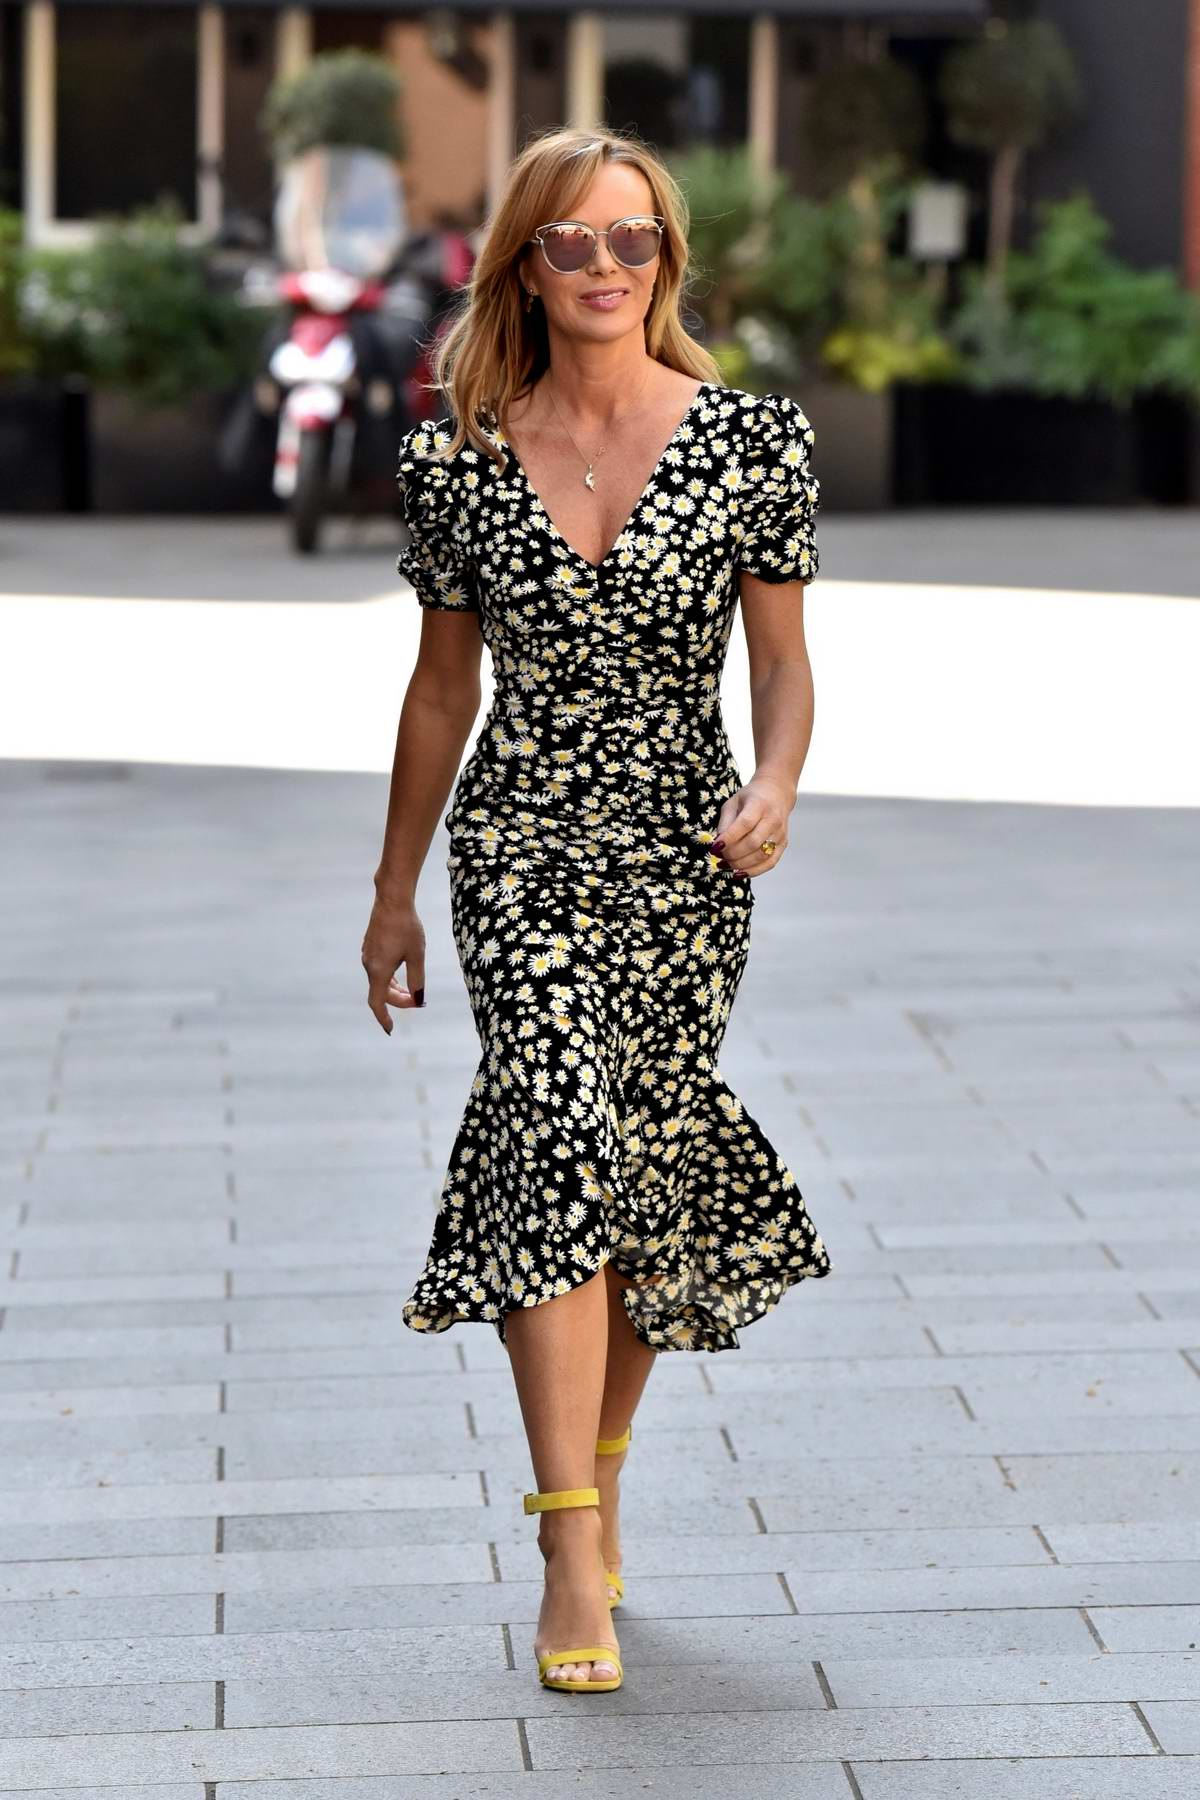 Amanda Holden seen wearing floral print dress as she leaves after Heart Radio Breakfast show in London, UK